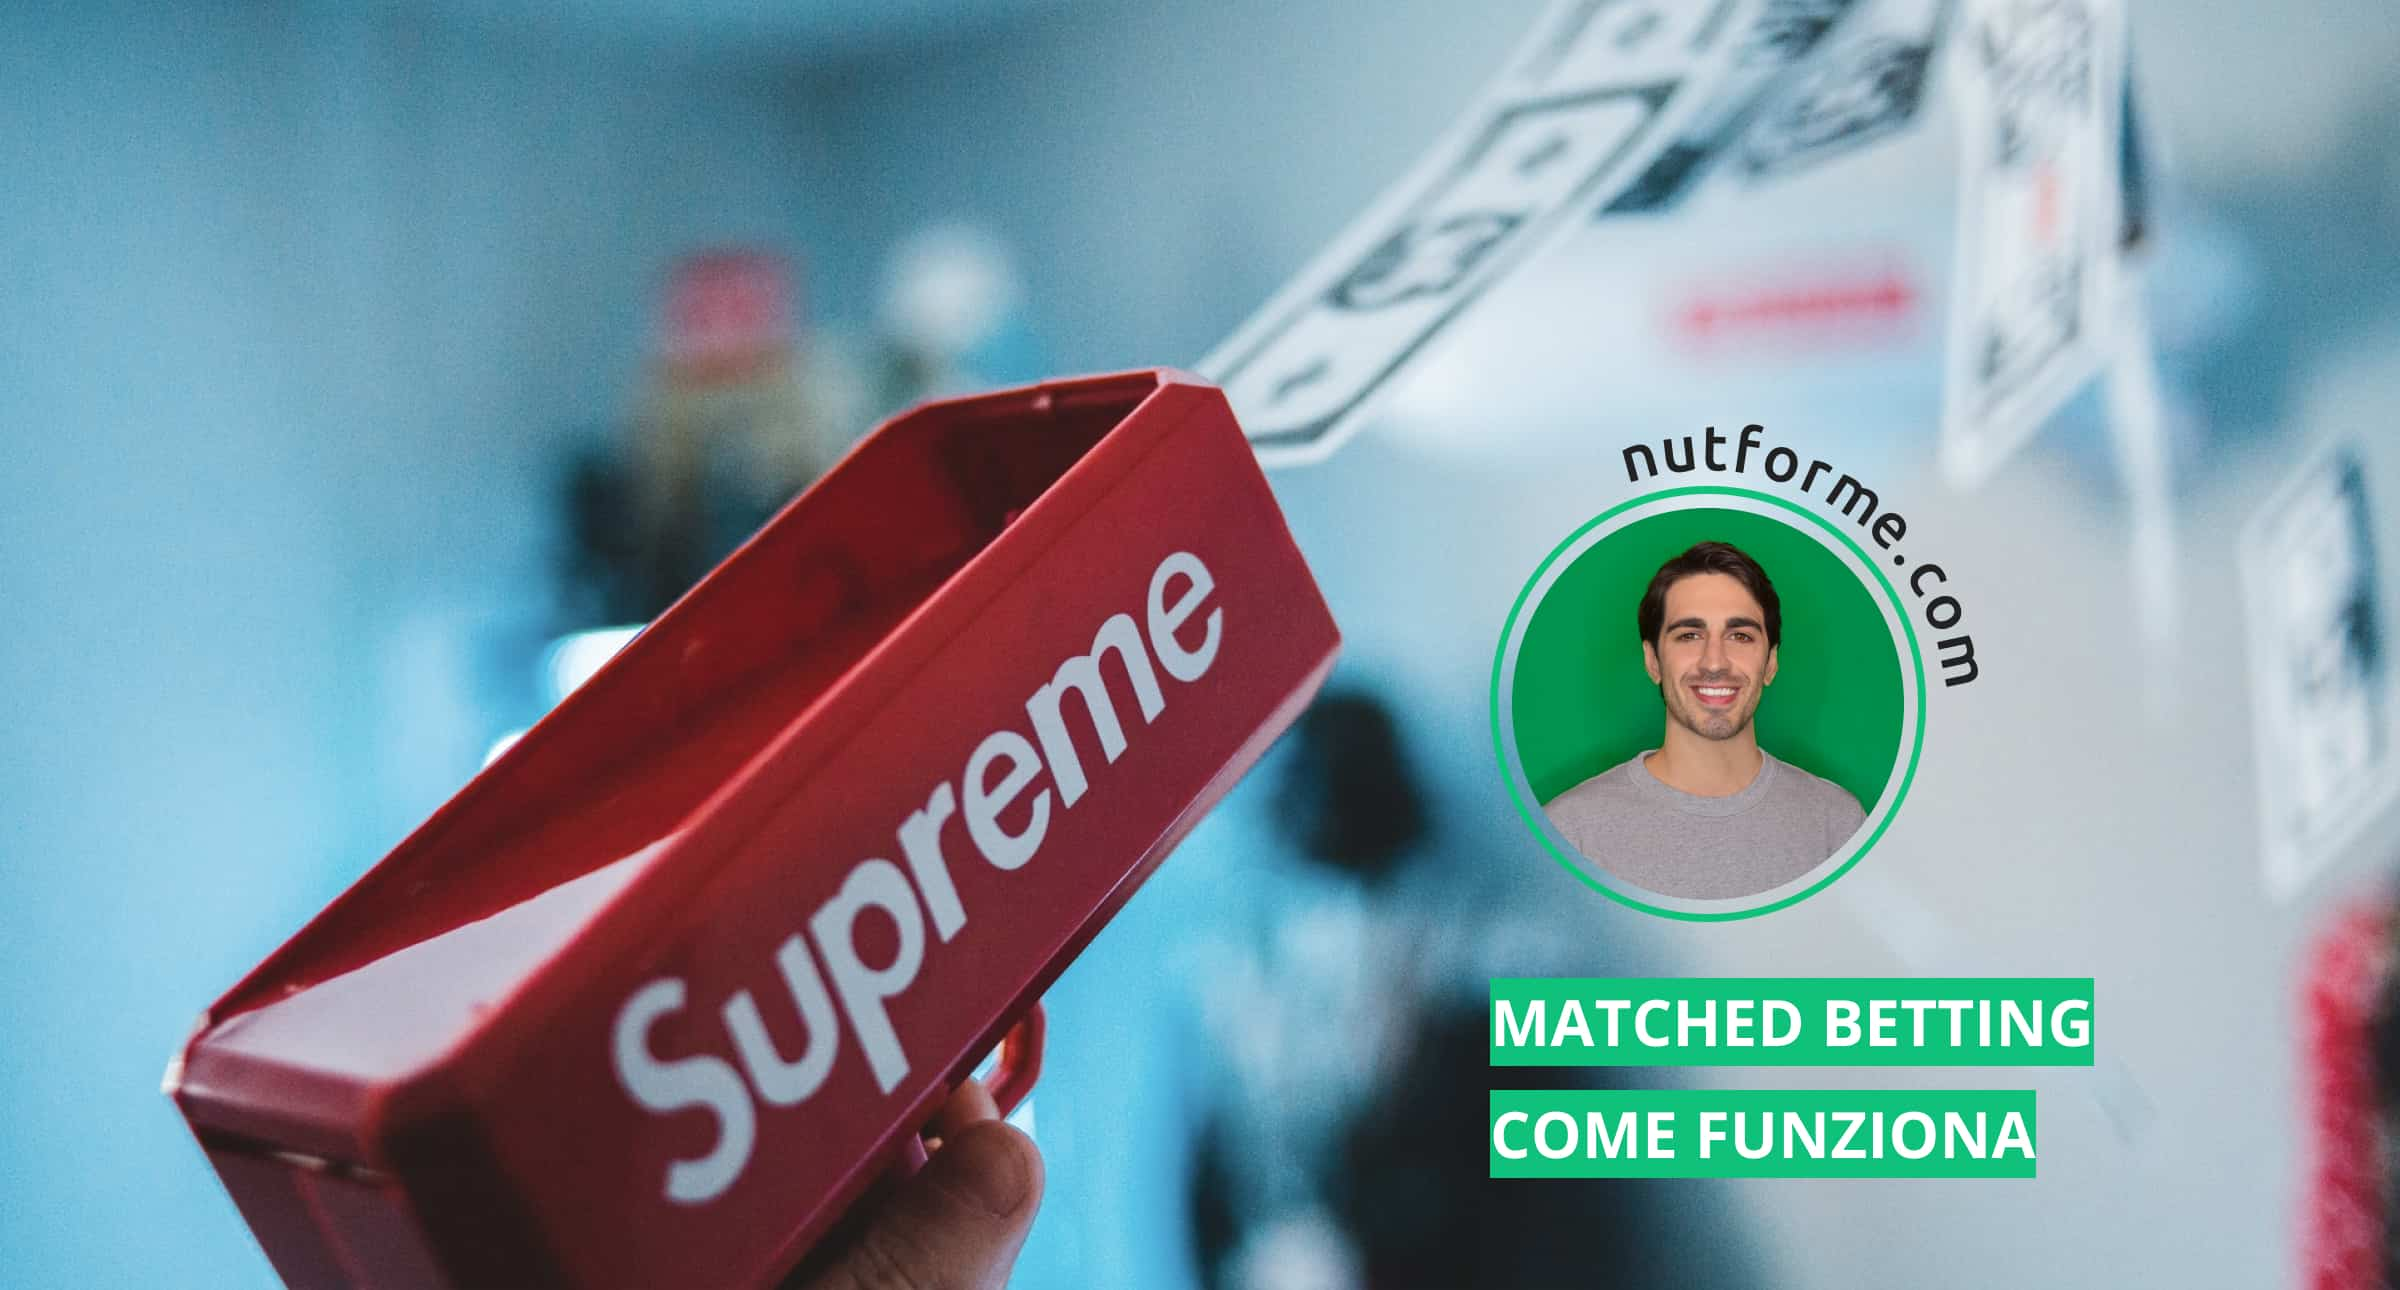 matched betting come funziona